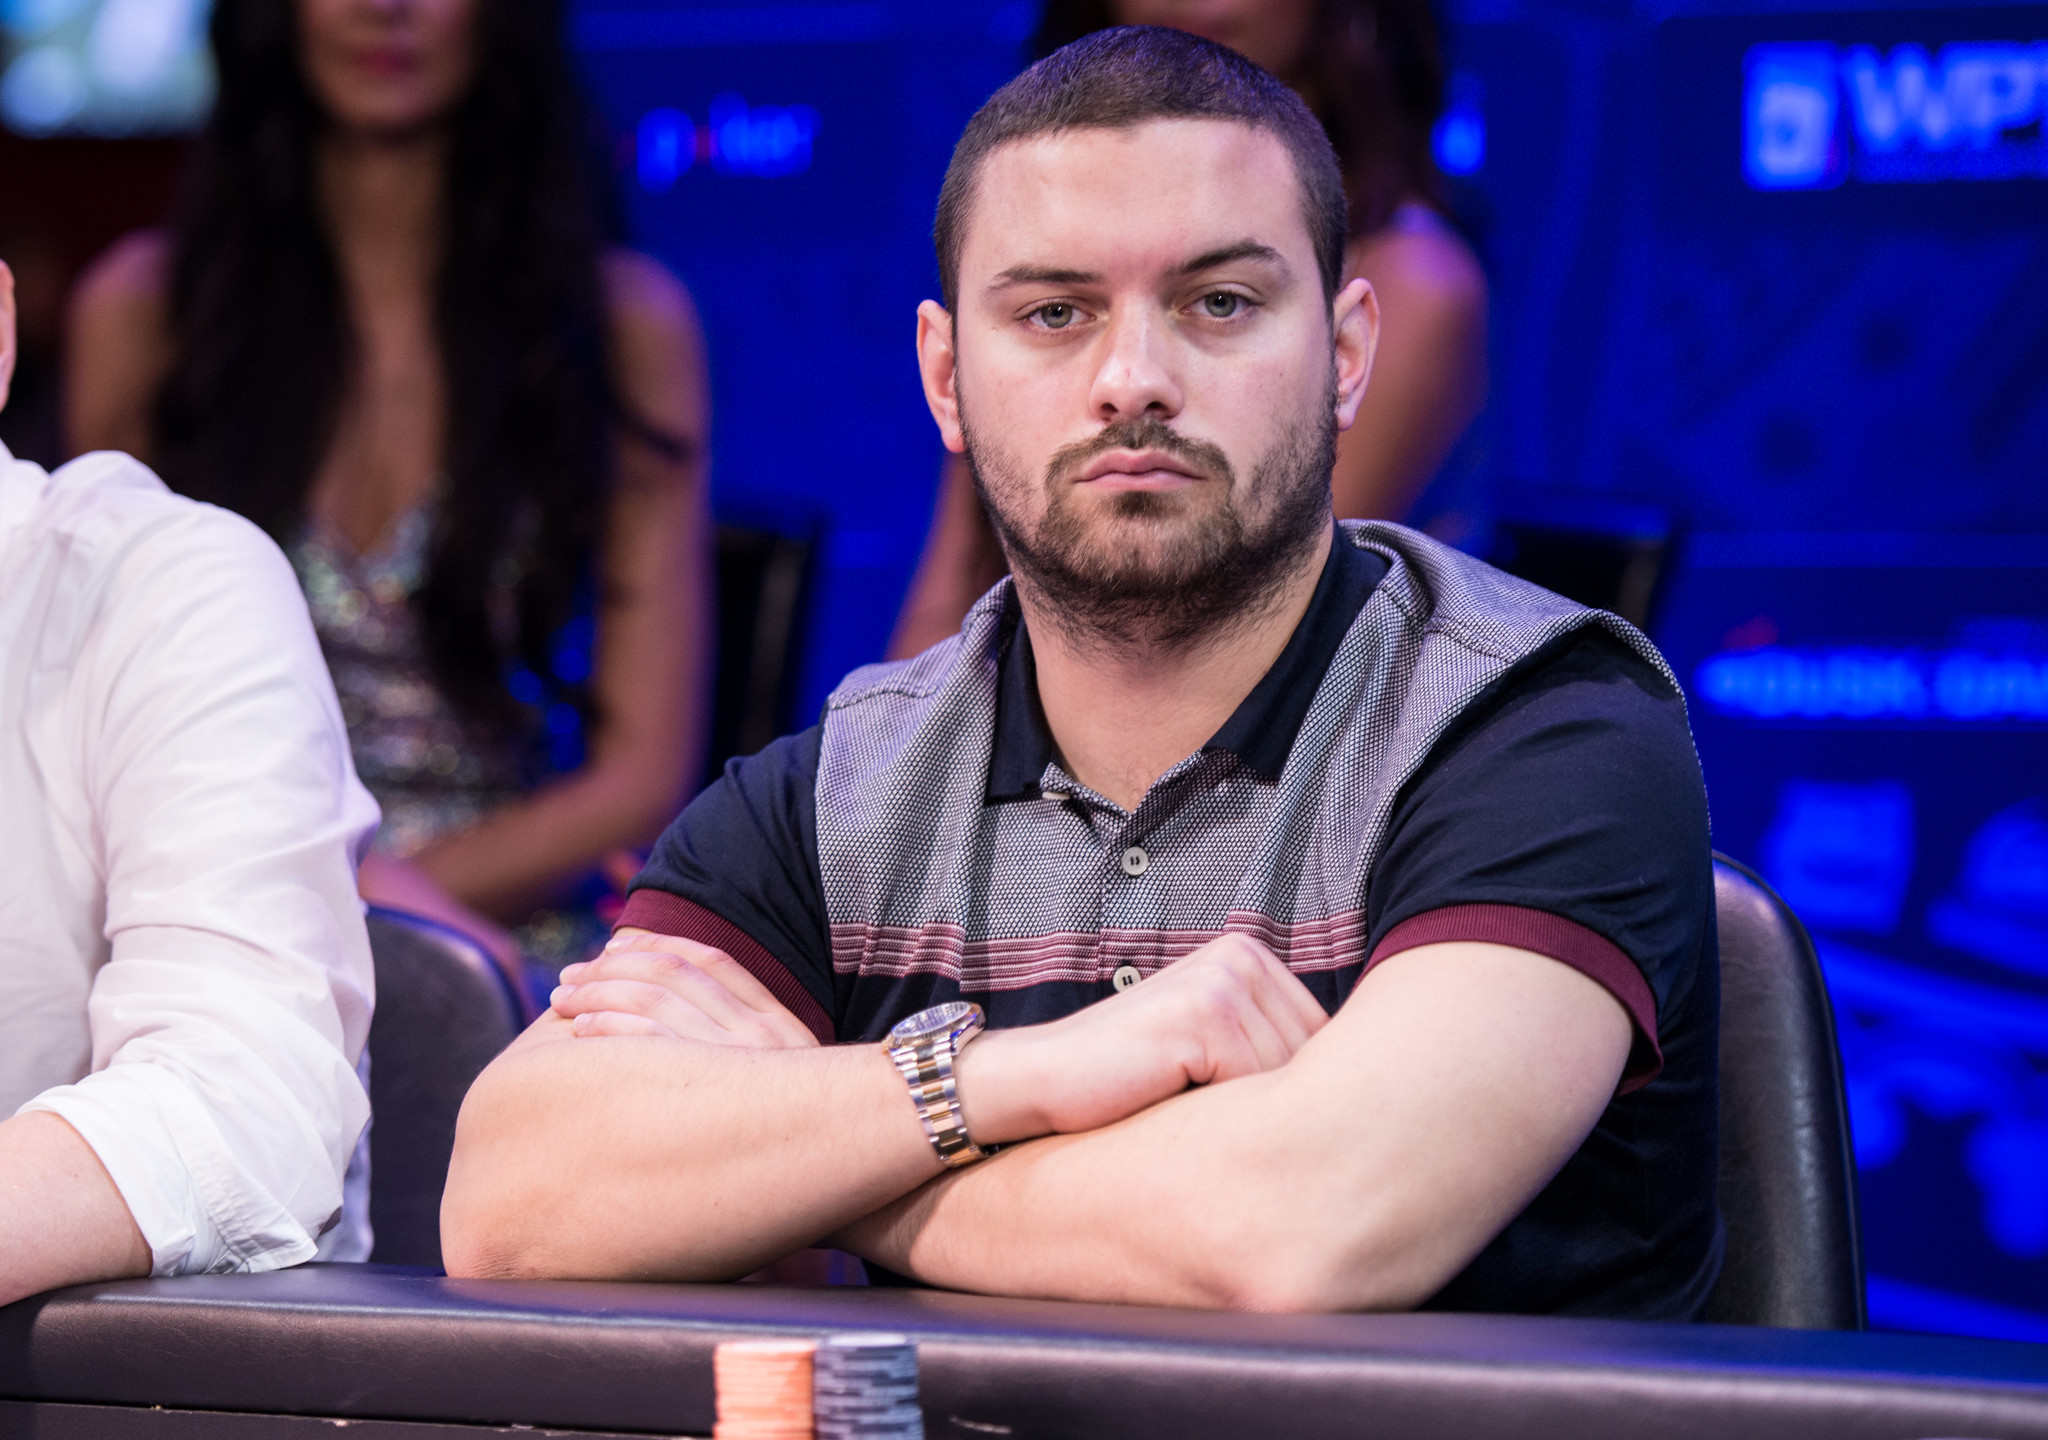 Phil Mighall WPT winner